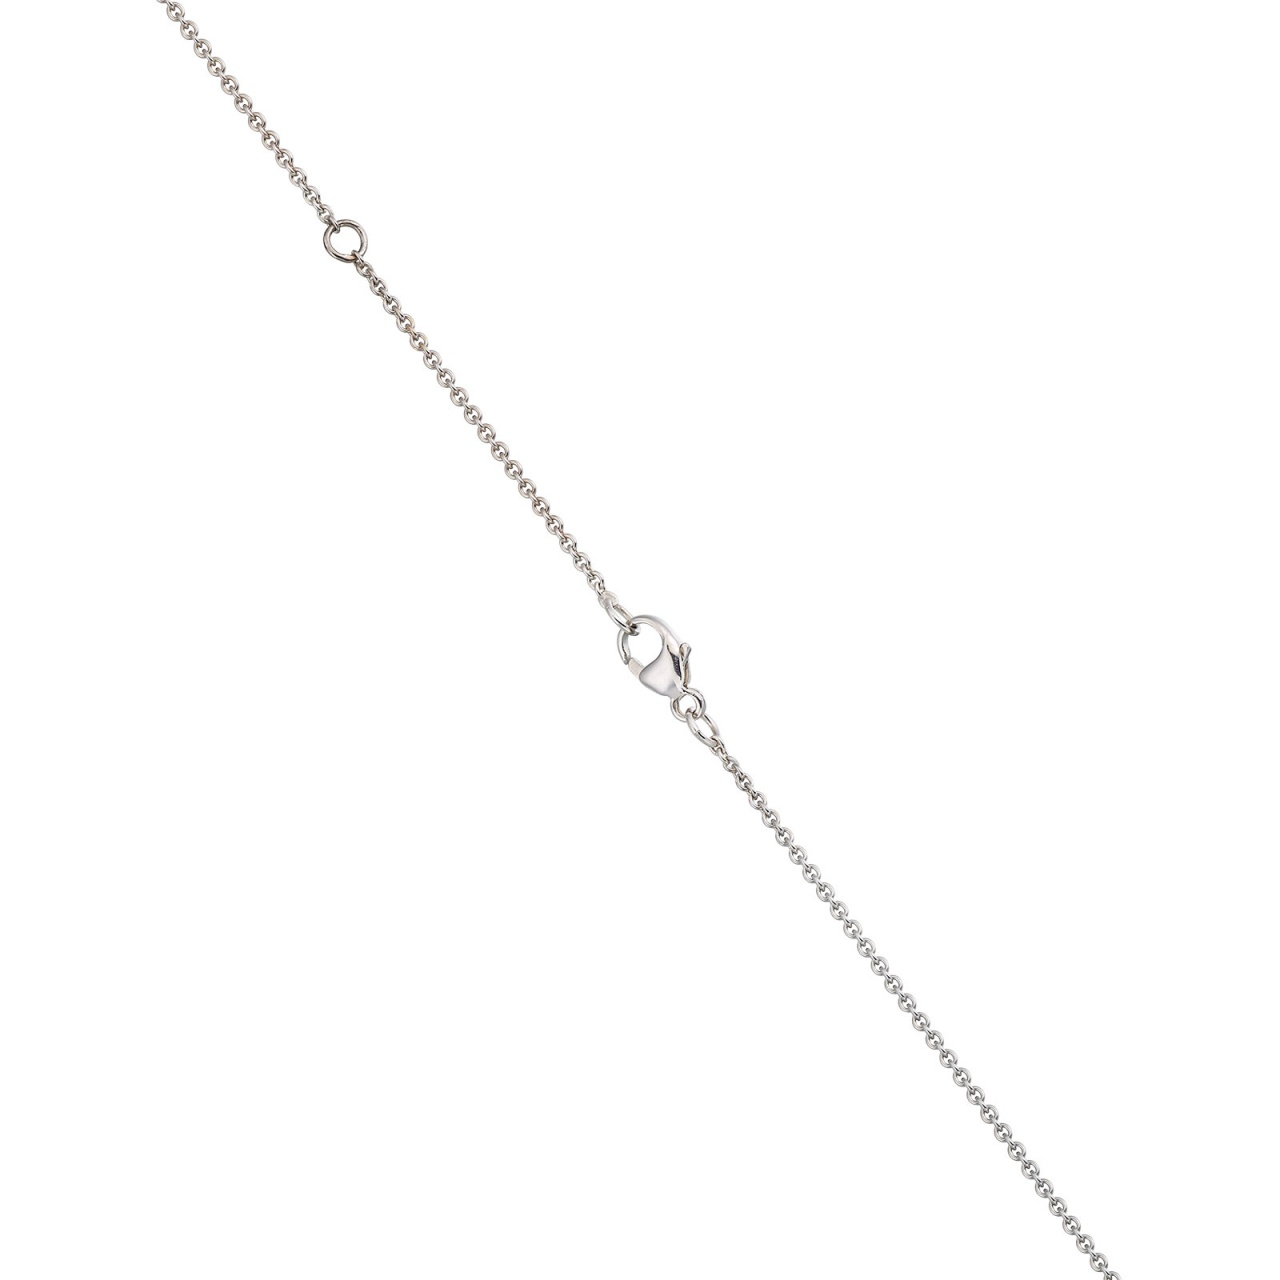 Zigzag Diamond Pendant in White Gold-PEDIWG0576-1